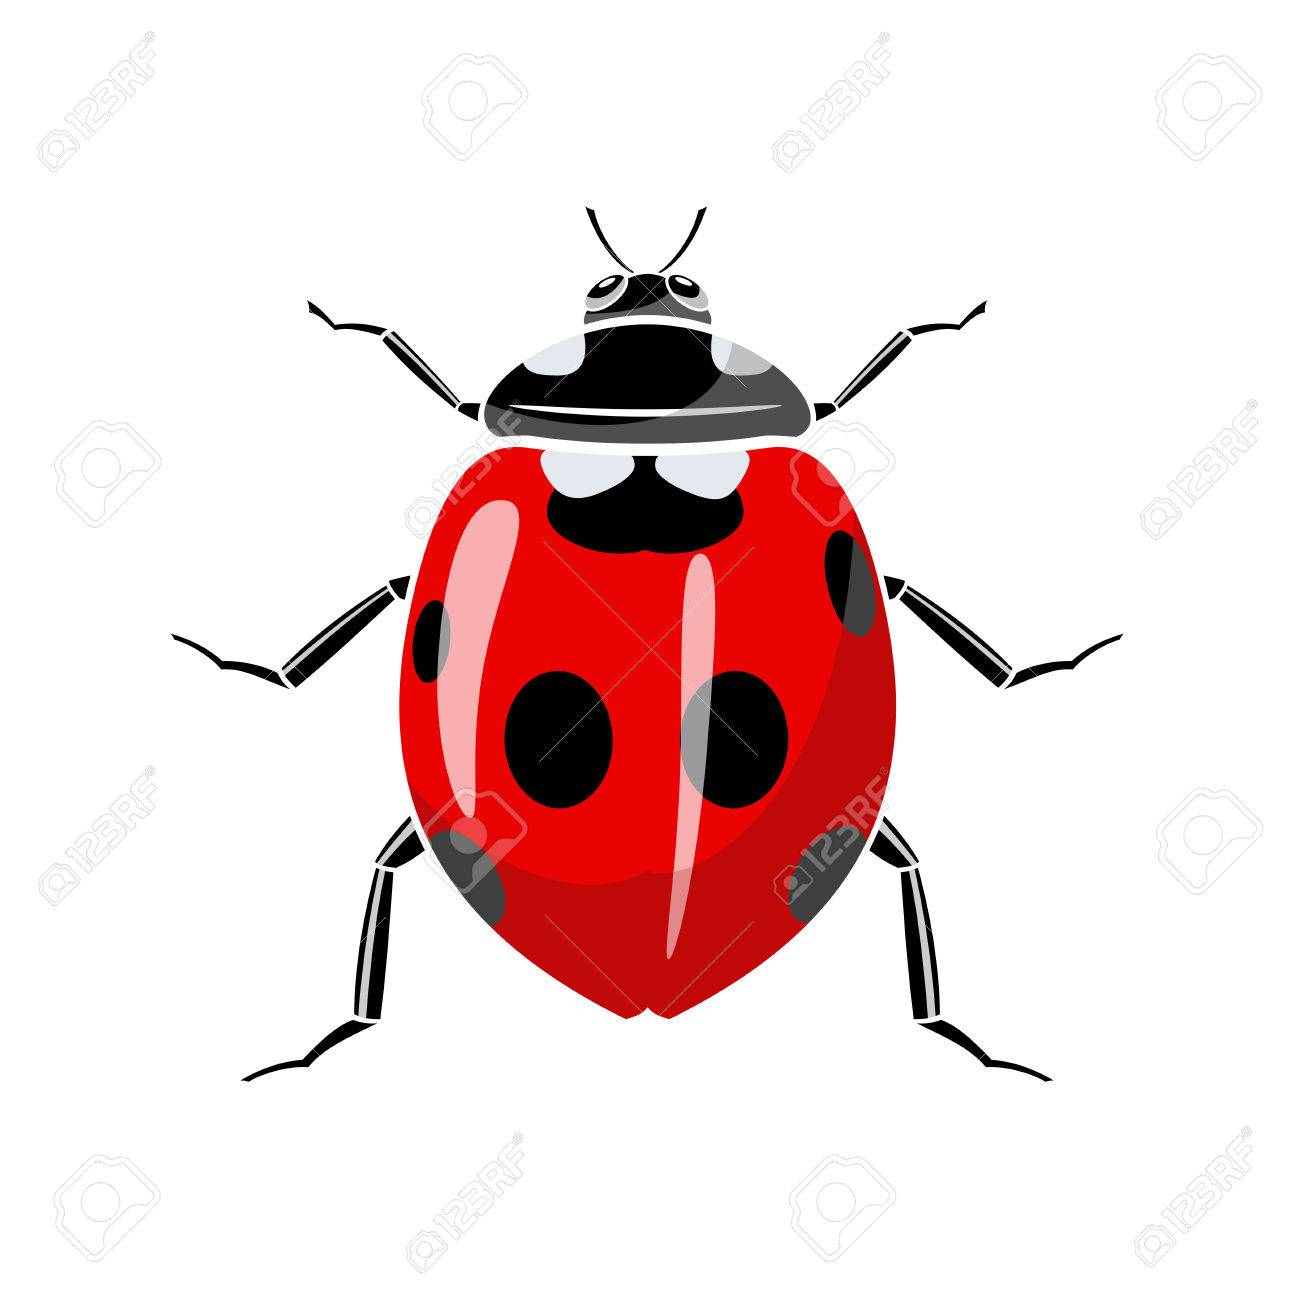 Symbol of a ladybug is on a white background. - 34577244